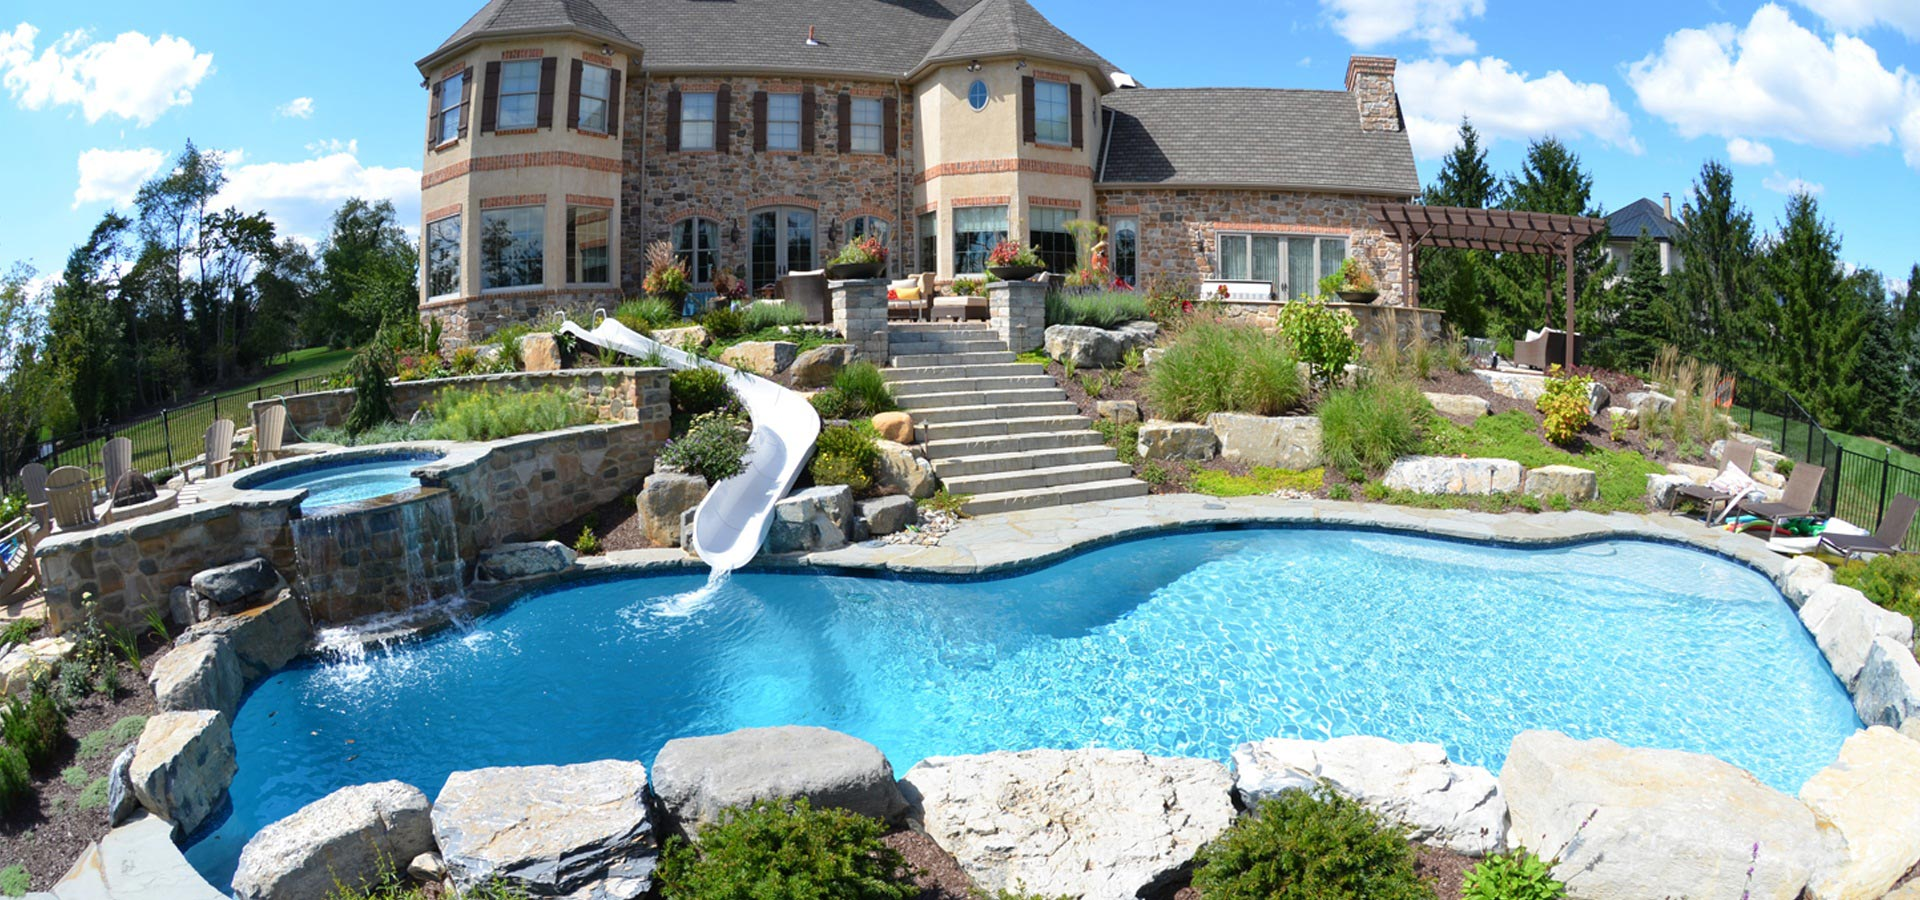 Underground swimming pool designs design ideas for Best in ground pool